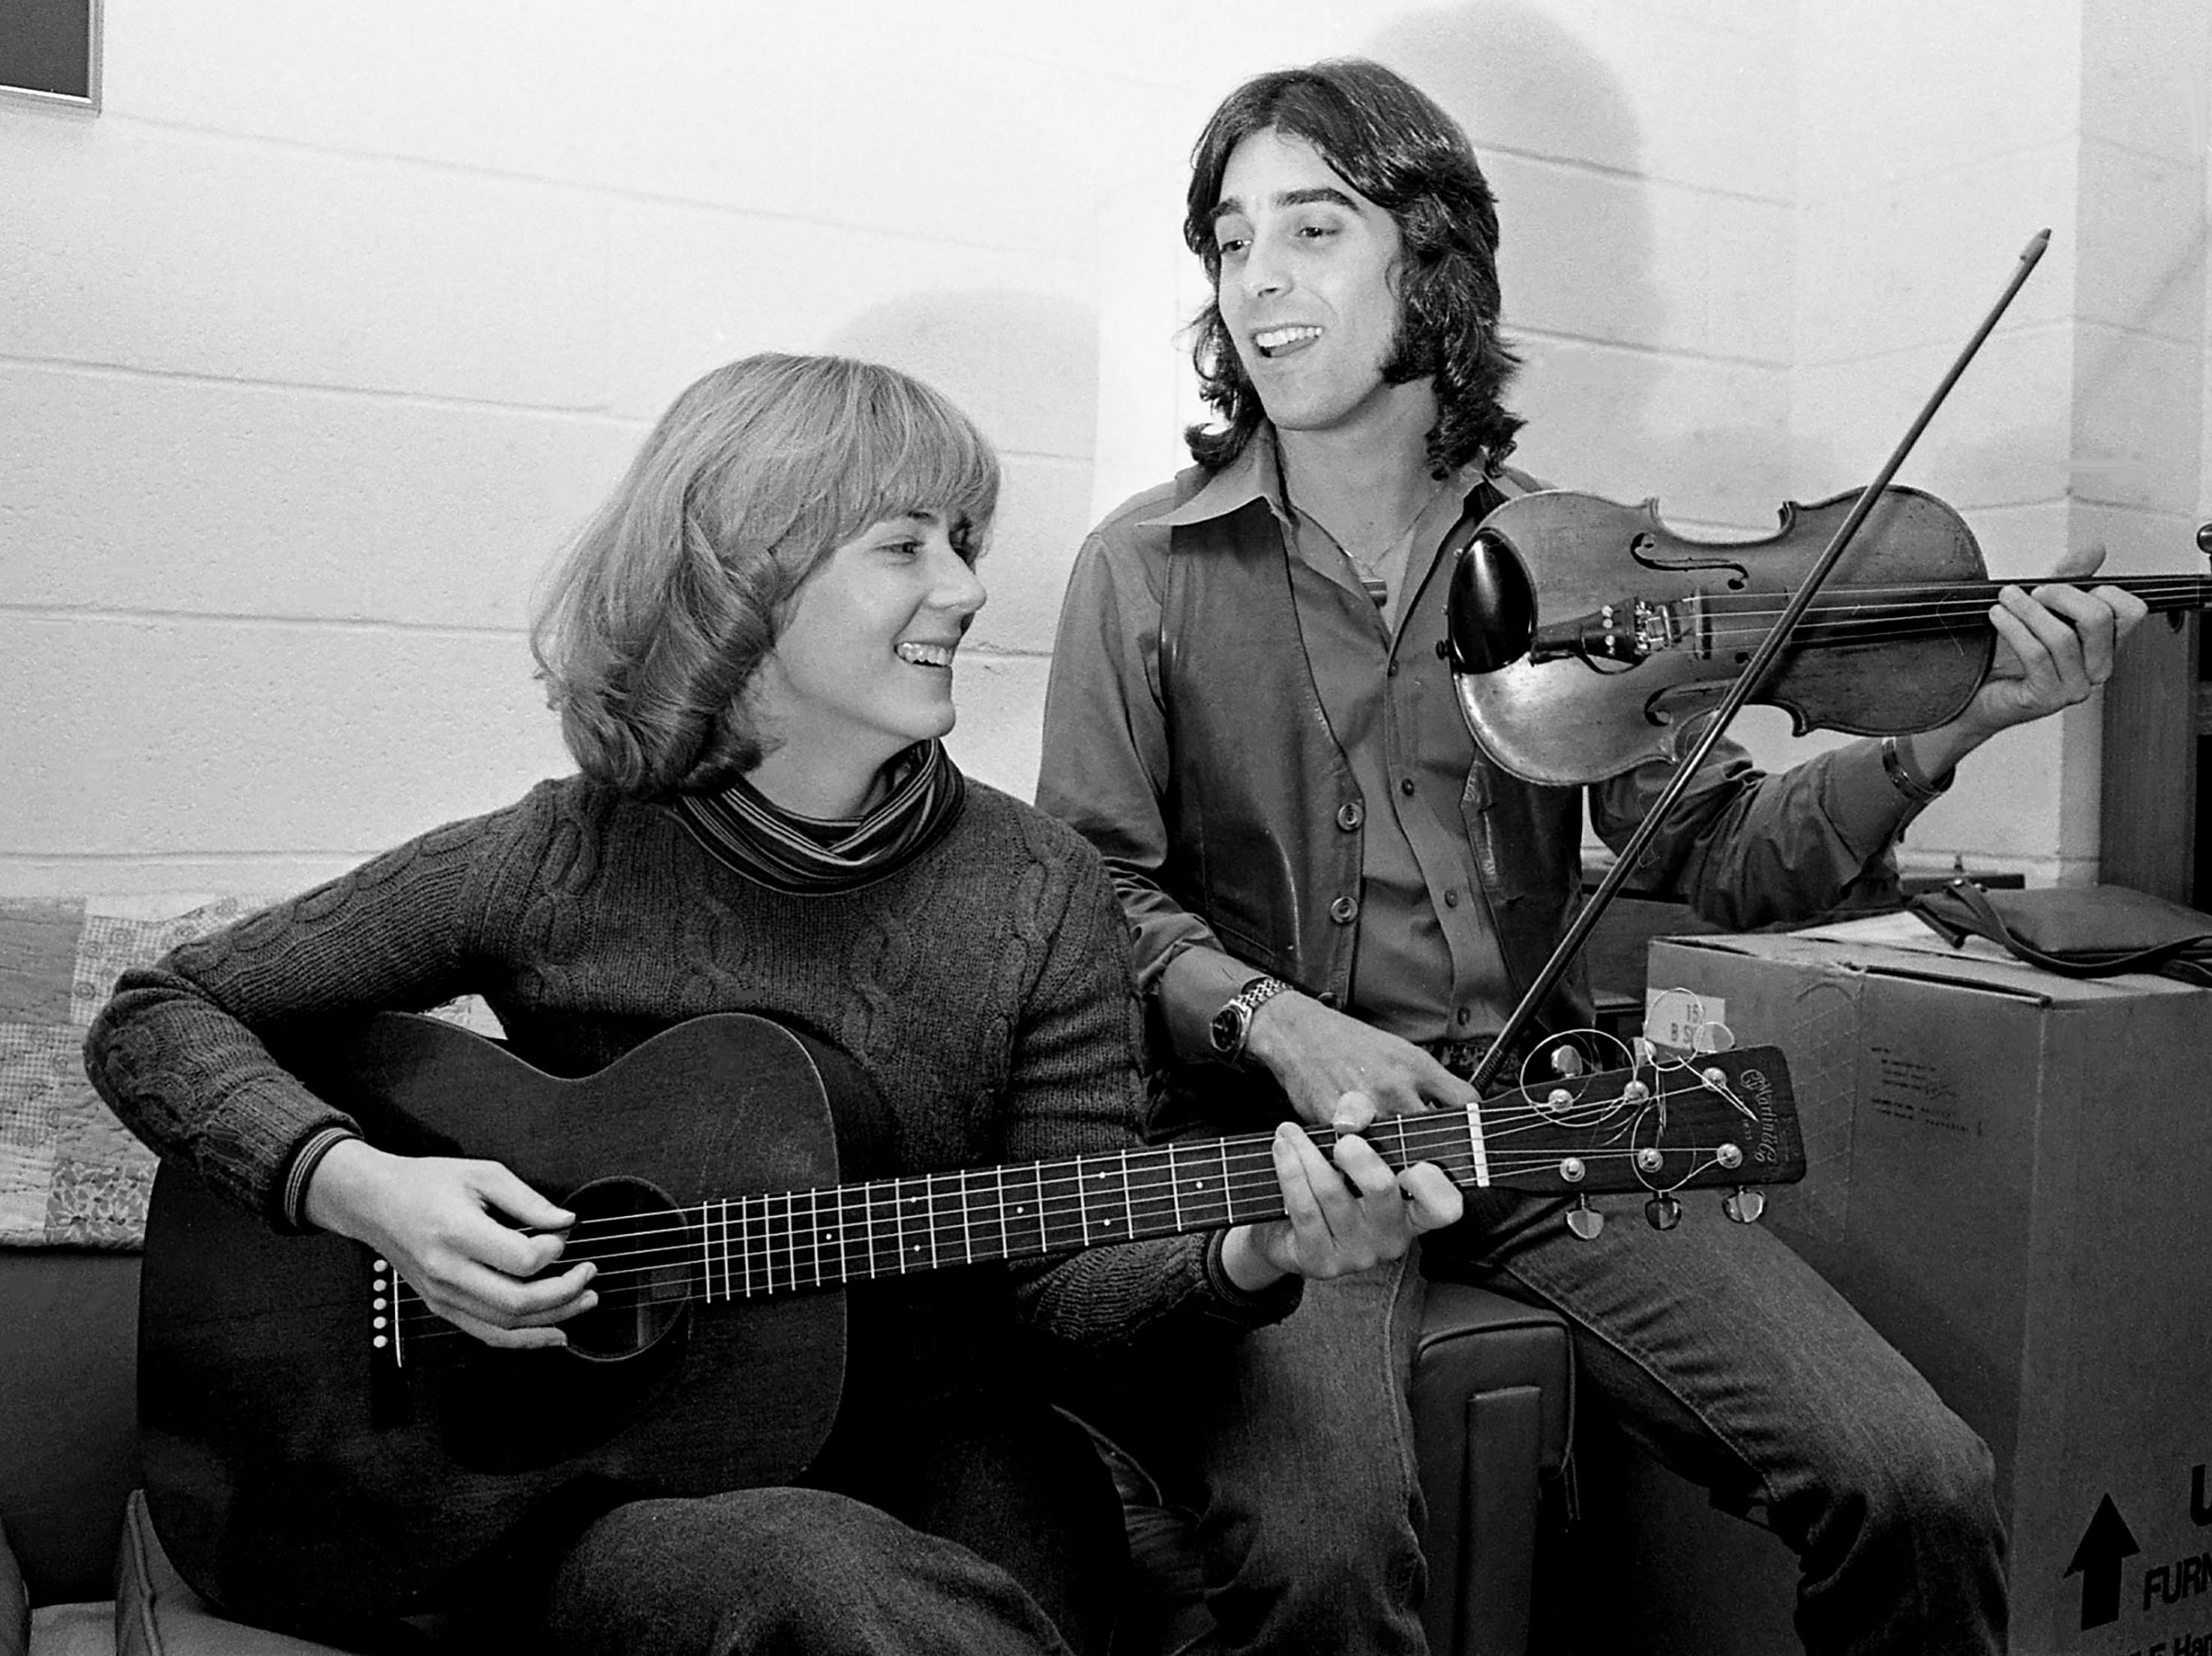 Amy Beville and Steve Plotkin of the Stella Parton Band rehearse at the Disciples of Divinity House on Feb. 6, 1979. The pair and other young performers will share the spotlight in a benefit concert at the Exit/In for the Rape and Sexual Abuse Center of Davidson County.